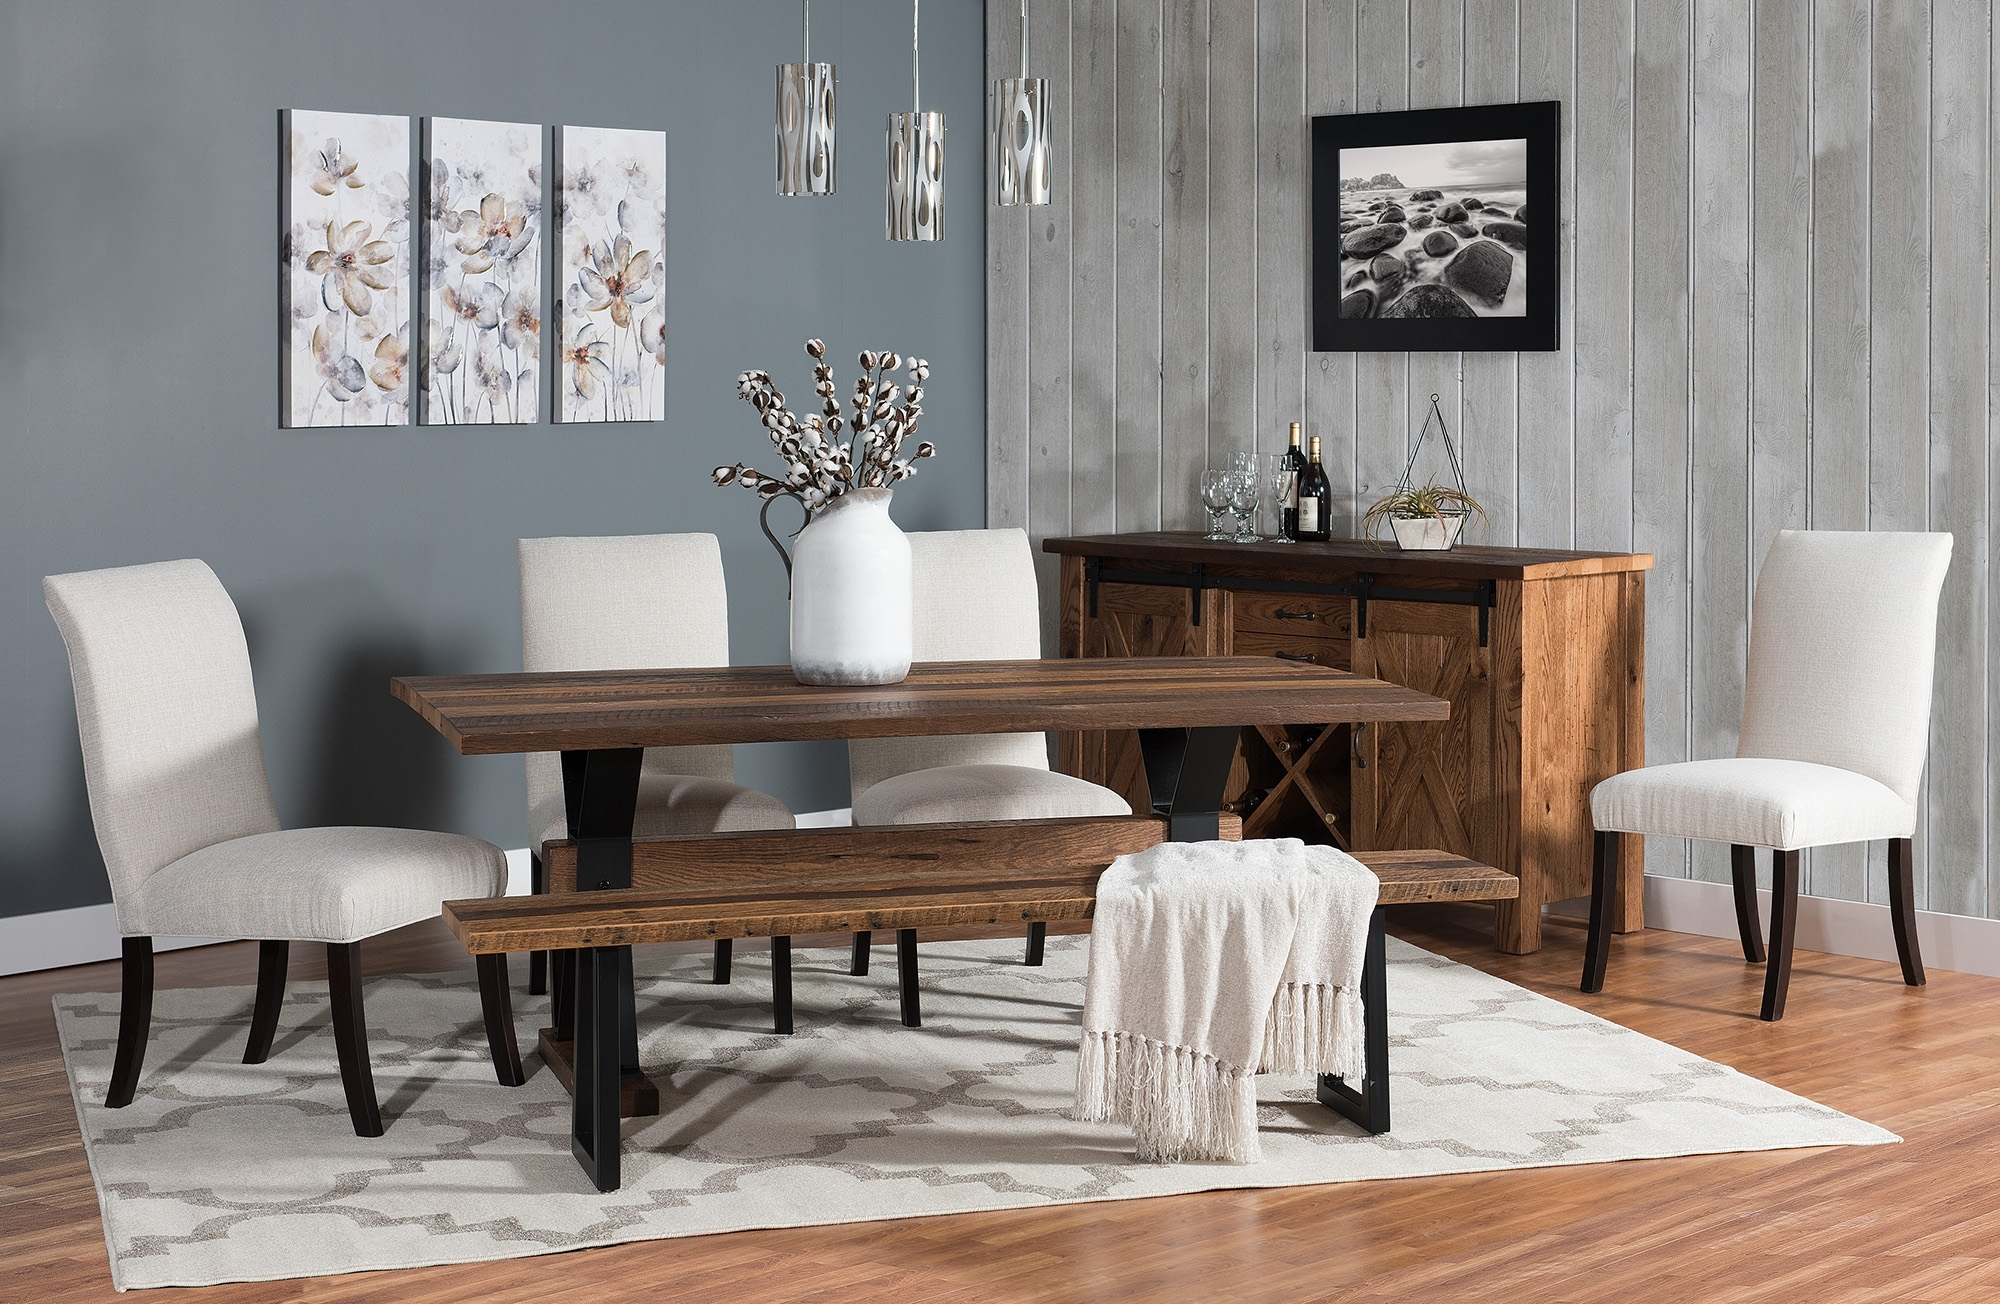 Weaver Ii Dining Tables Within 2017 Barnloft Trestle Dining Group – Weaver Furniture Sales (View 22 of 25)